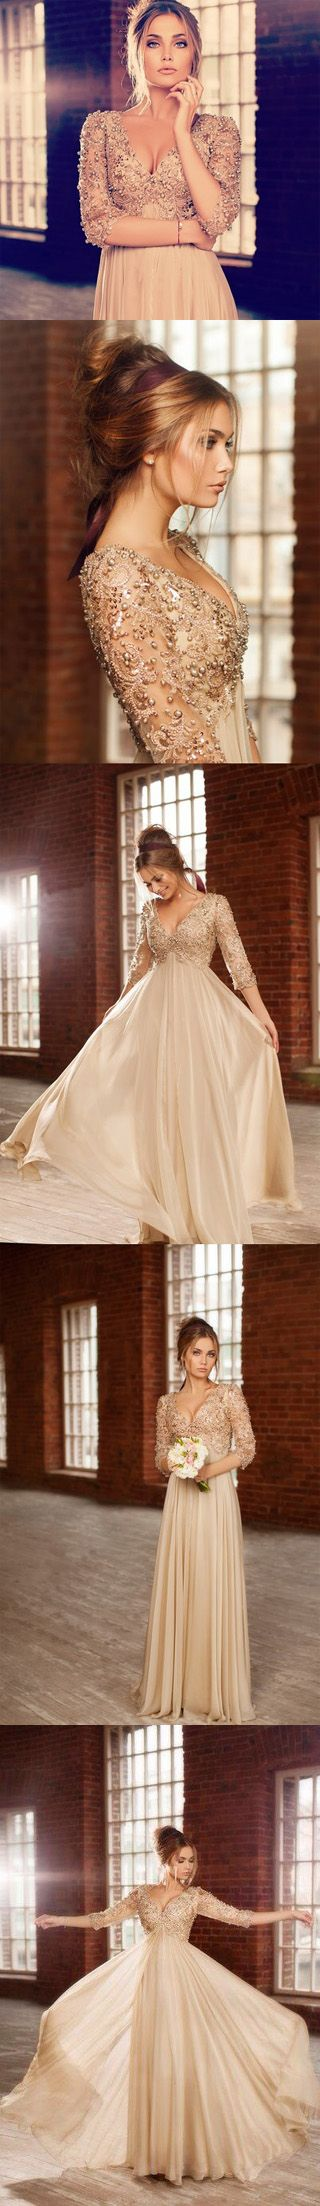 $144--Beautiful Long Prom Dresses 2015 New Arrival Deep V-neck 3/4 Sleeves Beaded A-line Chiffon Evening Dresses - hair color and makeup.